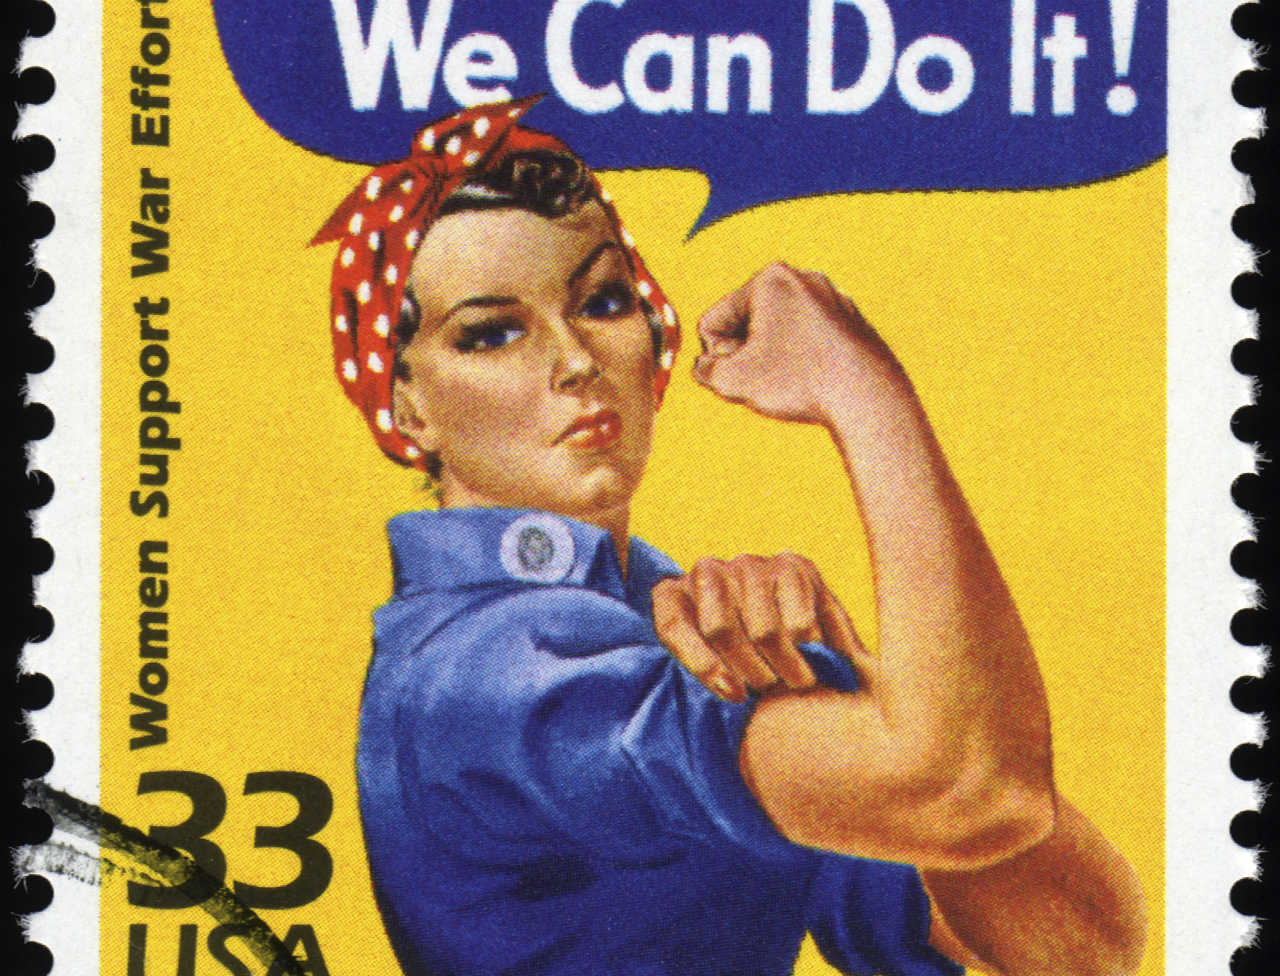 We can do it (photo prise ici)